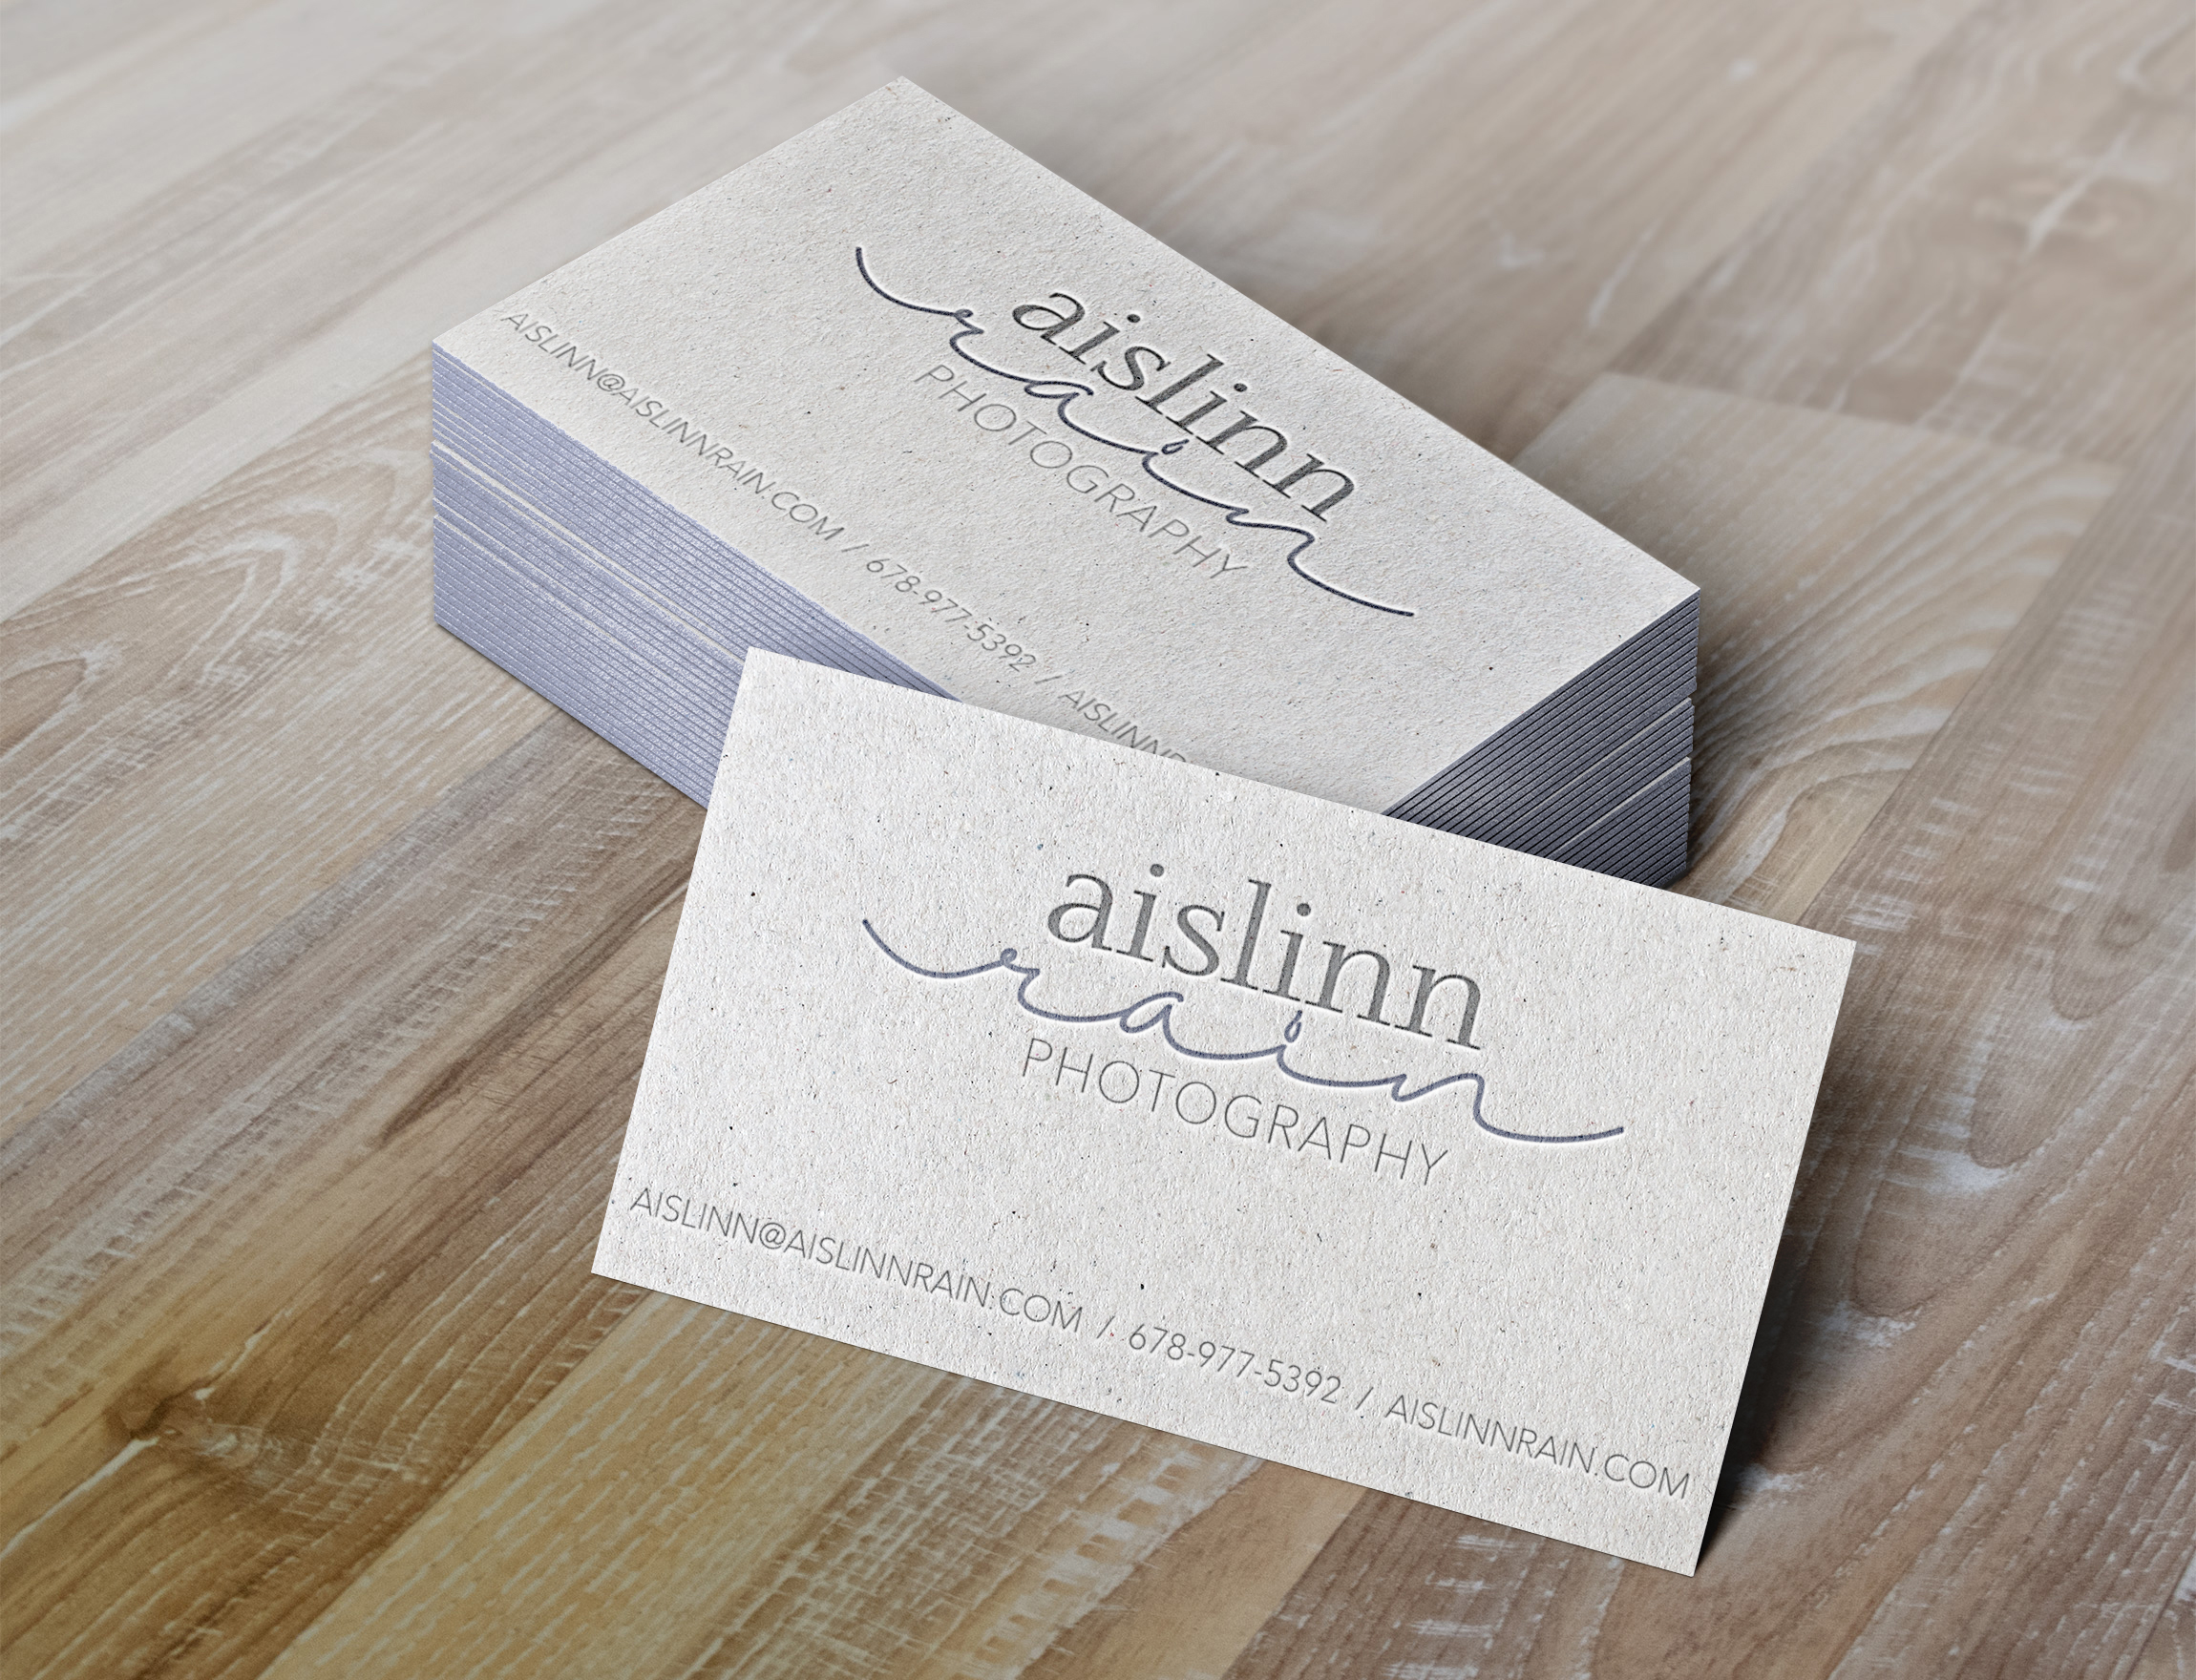 Aislinn Rain Photography // letterpress business card